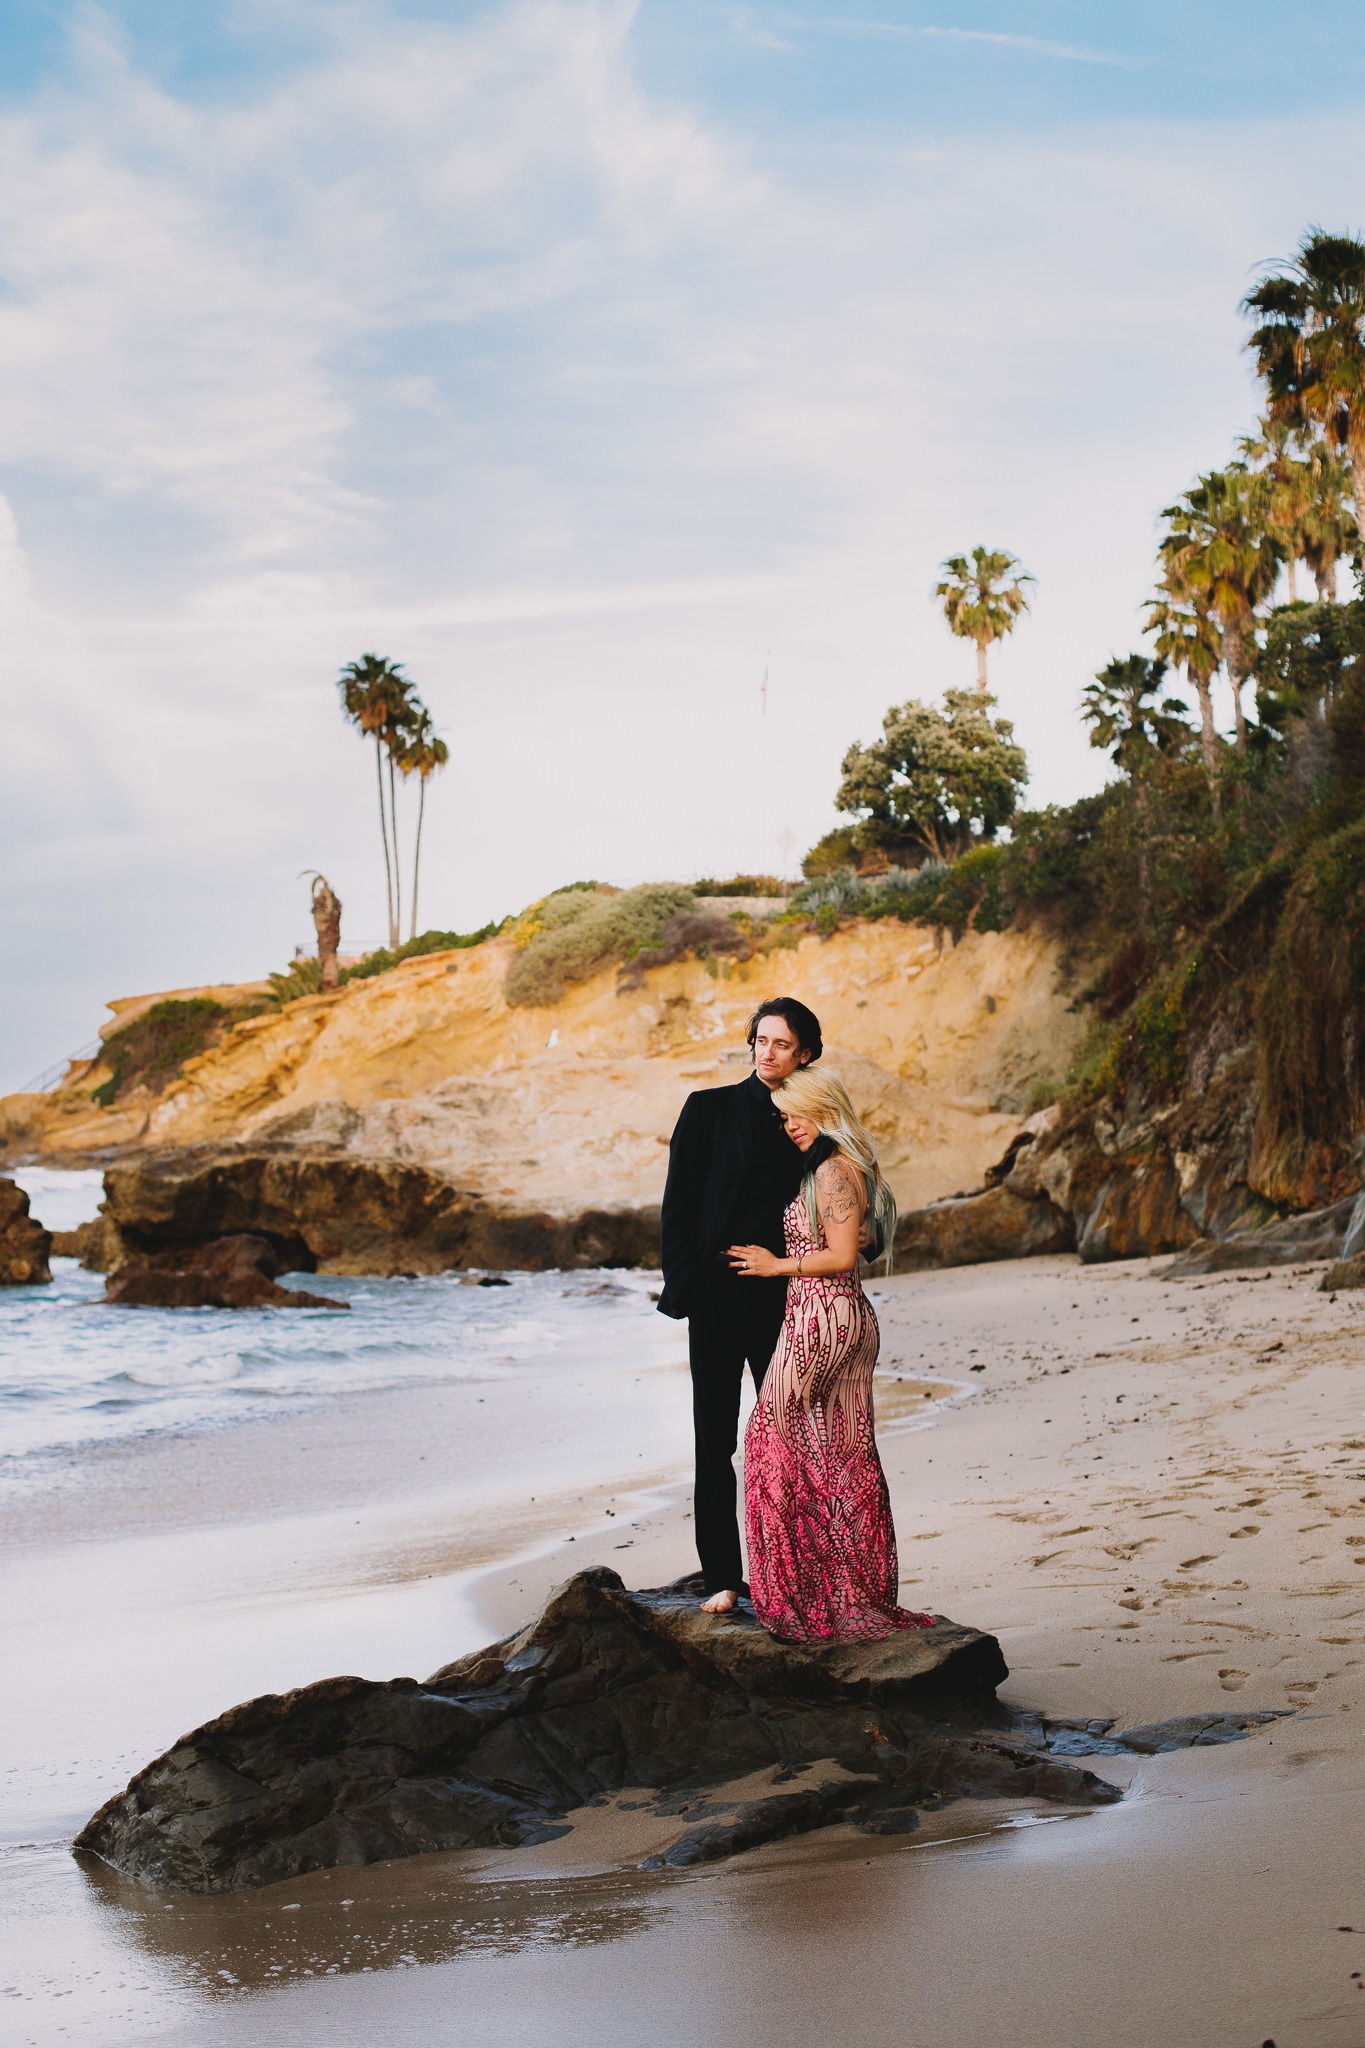 Archer Inspired Photography Amy and Kyle Wedding Engagement Session Long Beach Los Angeles California SoCal Best Top Rated Affordable Lifestyle Documentary Natural Light Fun Offbeat Unique Photographer-54.jpg